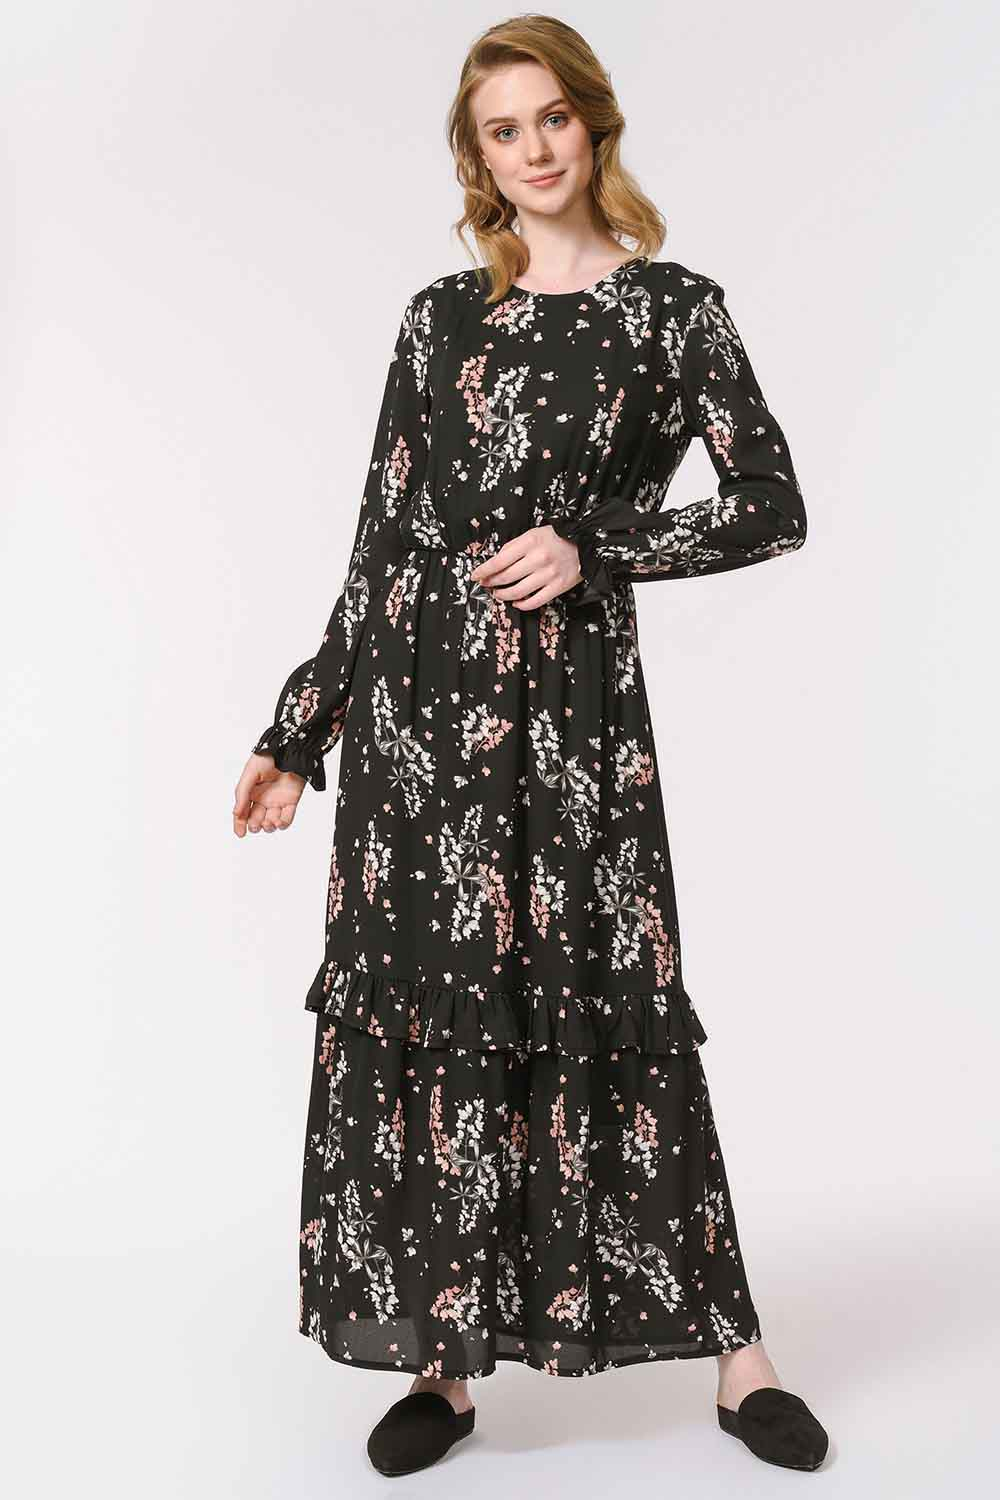 MIZALLE Floral Patterned Long Dress (Black) (1)